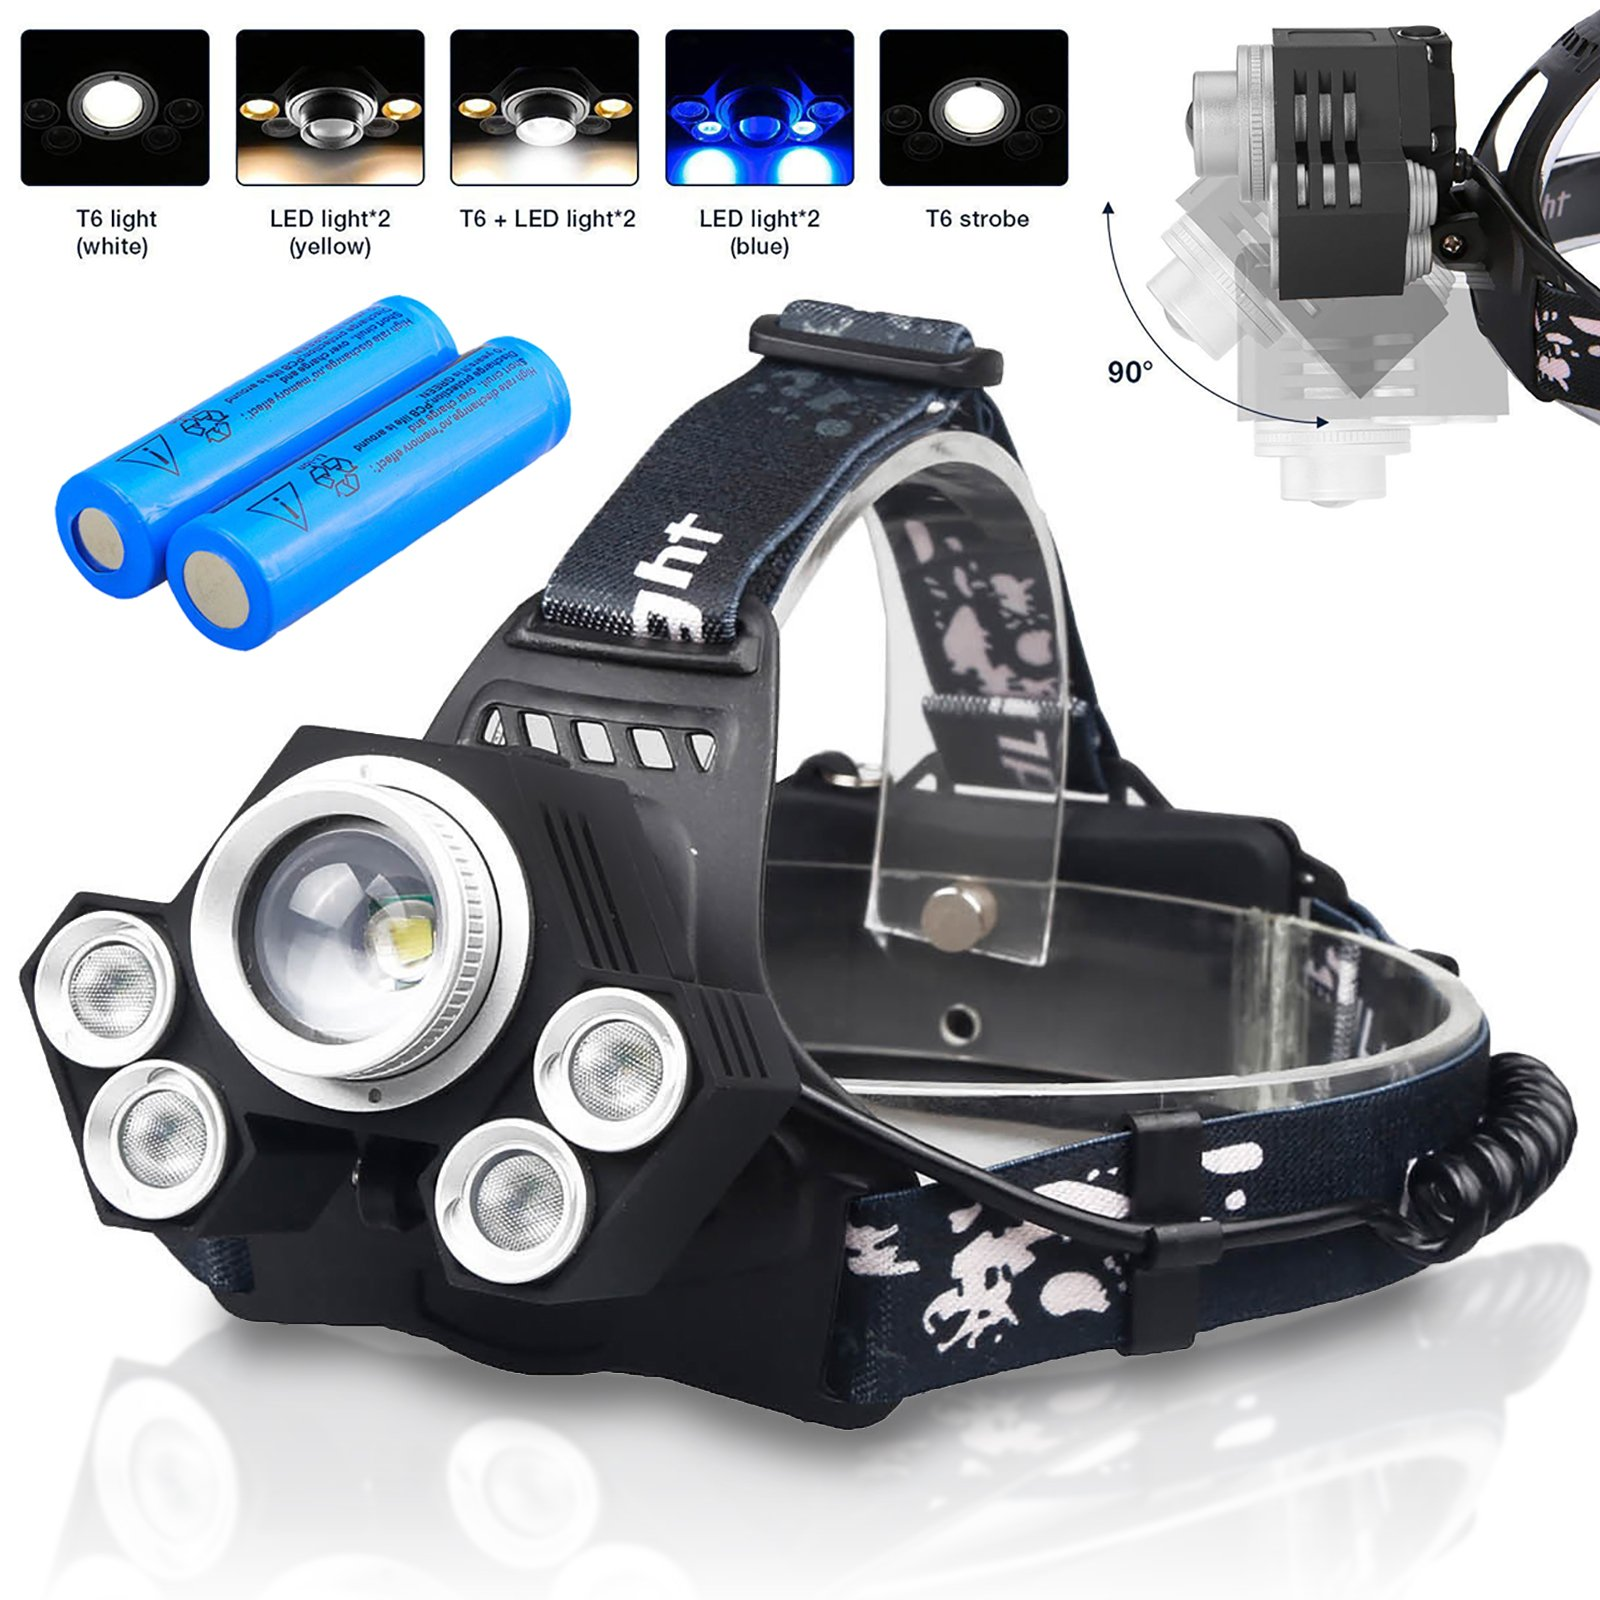 20000 Lumens Brightest LED Headlamp Flashlight, Zoomable 5 Modes Rechargeable Headlight with Adjustable Headband, Waterproof 5 LED Super Bright Hard Head Lamp with Battery Powered, USB Cable